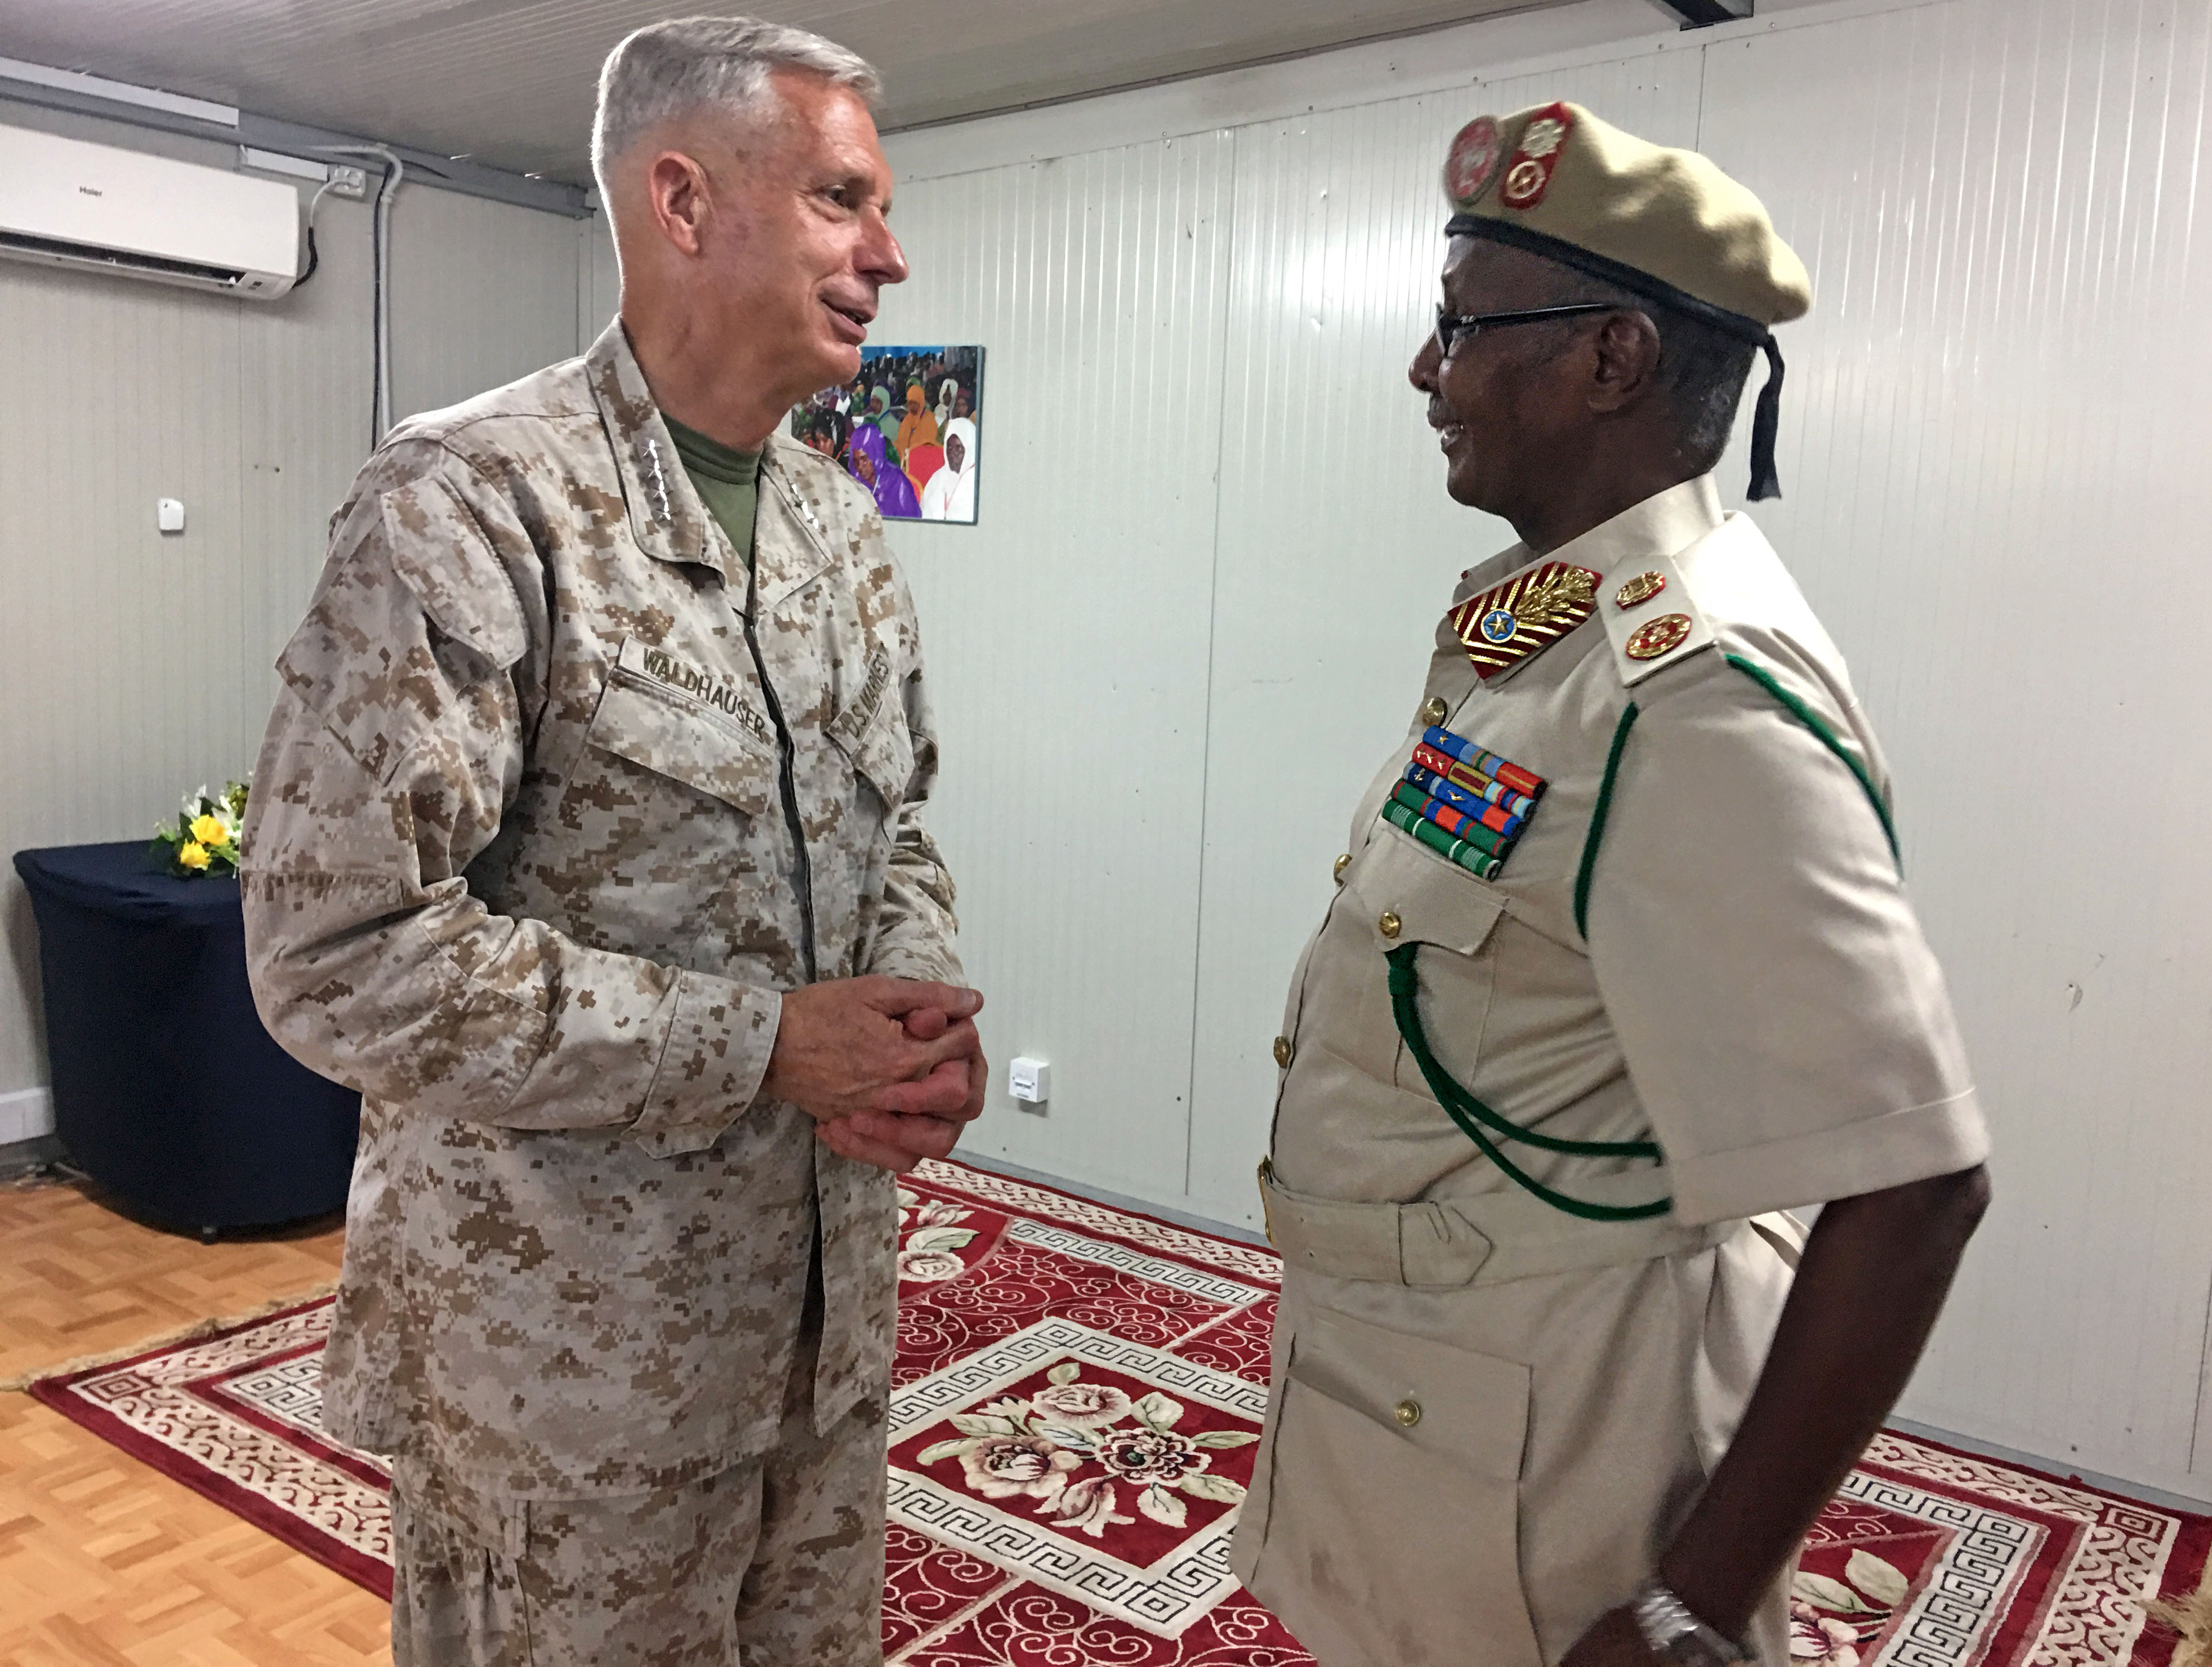 U.S. Marine Corps Gen. Thomas D. Waldhauser, commander, U.S. Africa Command, discusses U.S. and Somalia partnering efforts with Somali Maj. Gen. Dahir Adan Elmi, Somali Chief of Defense Forces, during a meeting in Mogadishu, Somalia, June 11, 2019. The overarching goal in Somalia for AFRICOM is to help the Federal Government of Somalia provide a safe and secure environment for the people of Somalia, deter organizations such as al-Shabaab and ISIS-Somalia from expanding, and promote regional security.